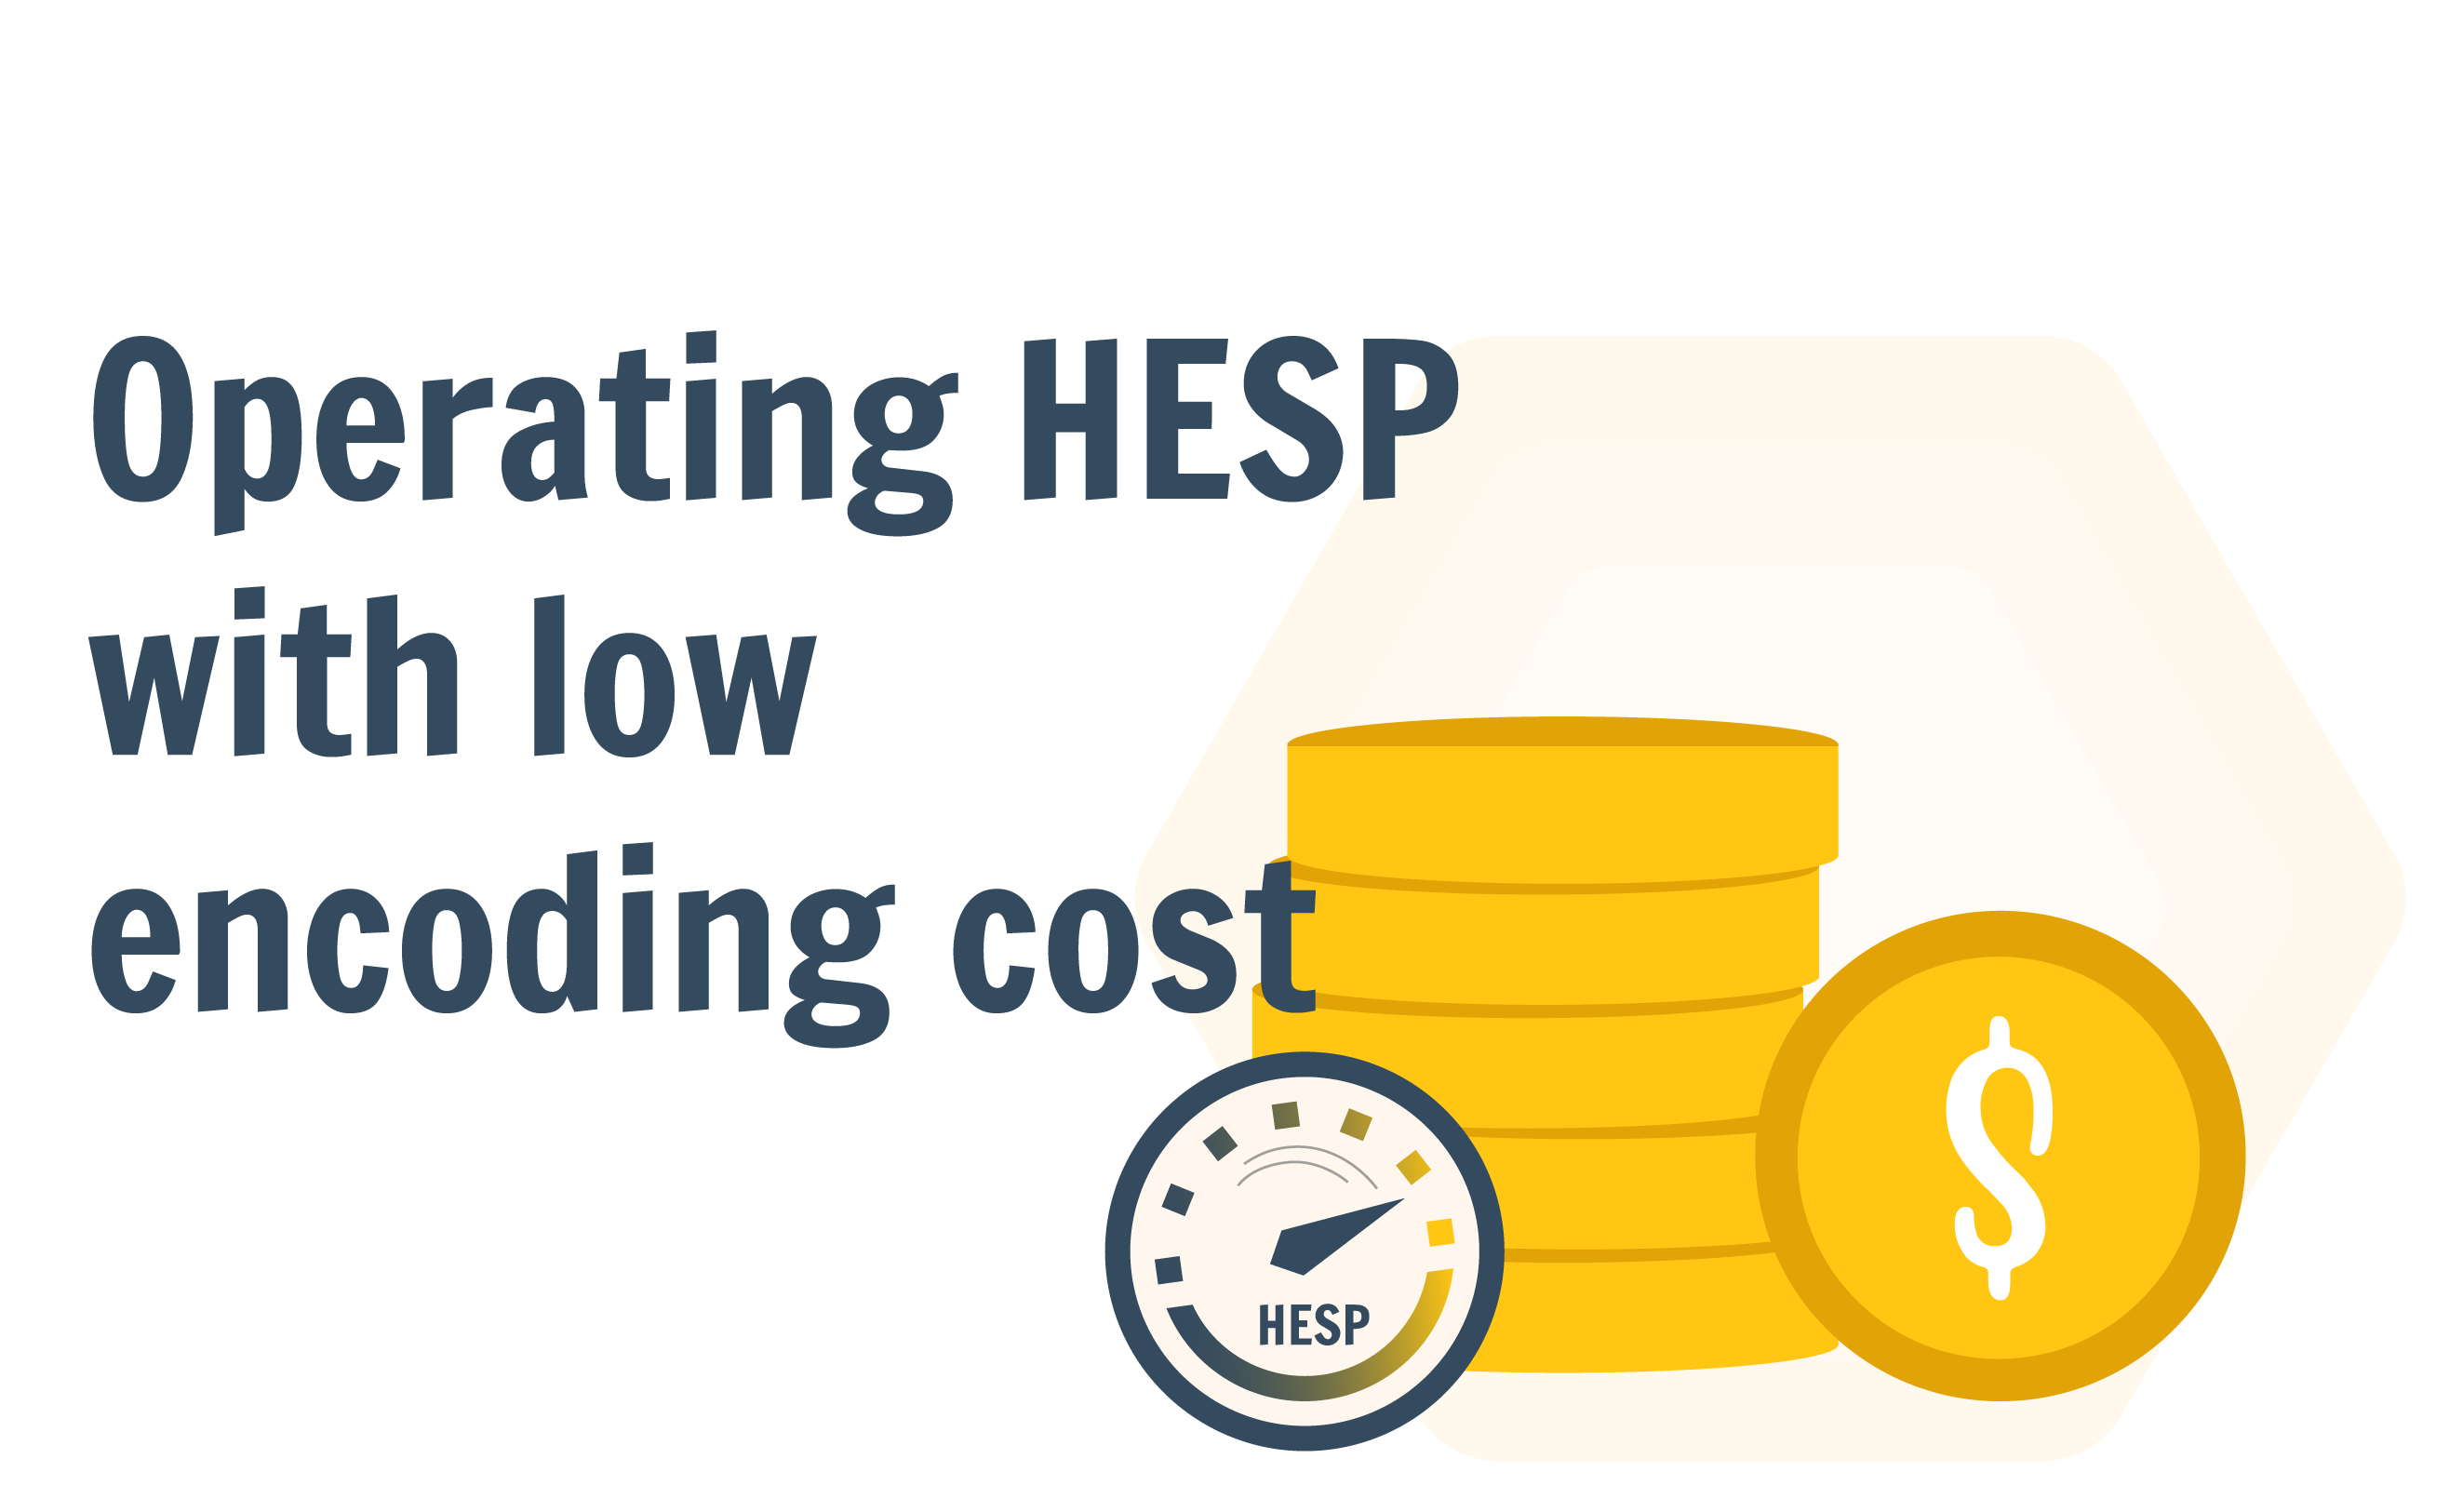 Operating HESP with low encoding costs